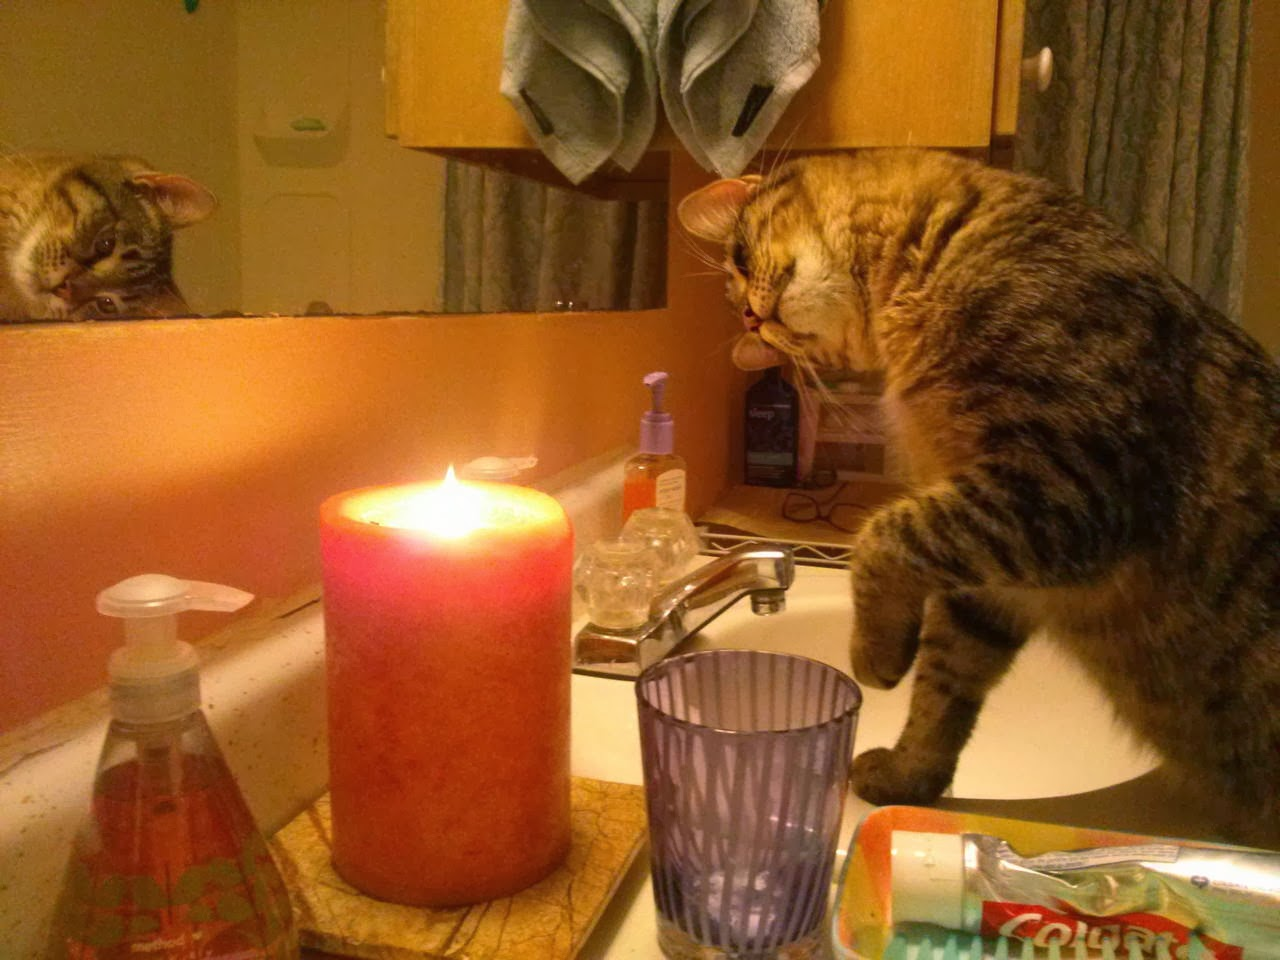 Funny cats - part 87 (40 pics + 10 gifs), cat fascinates by fire on candle